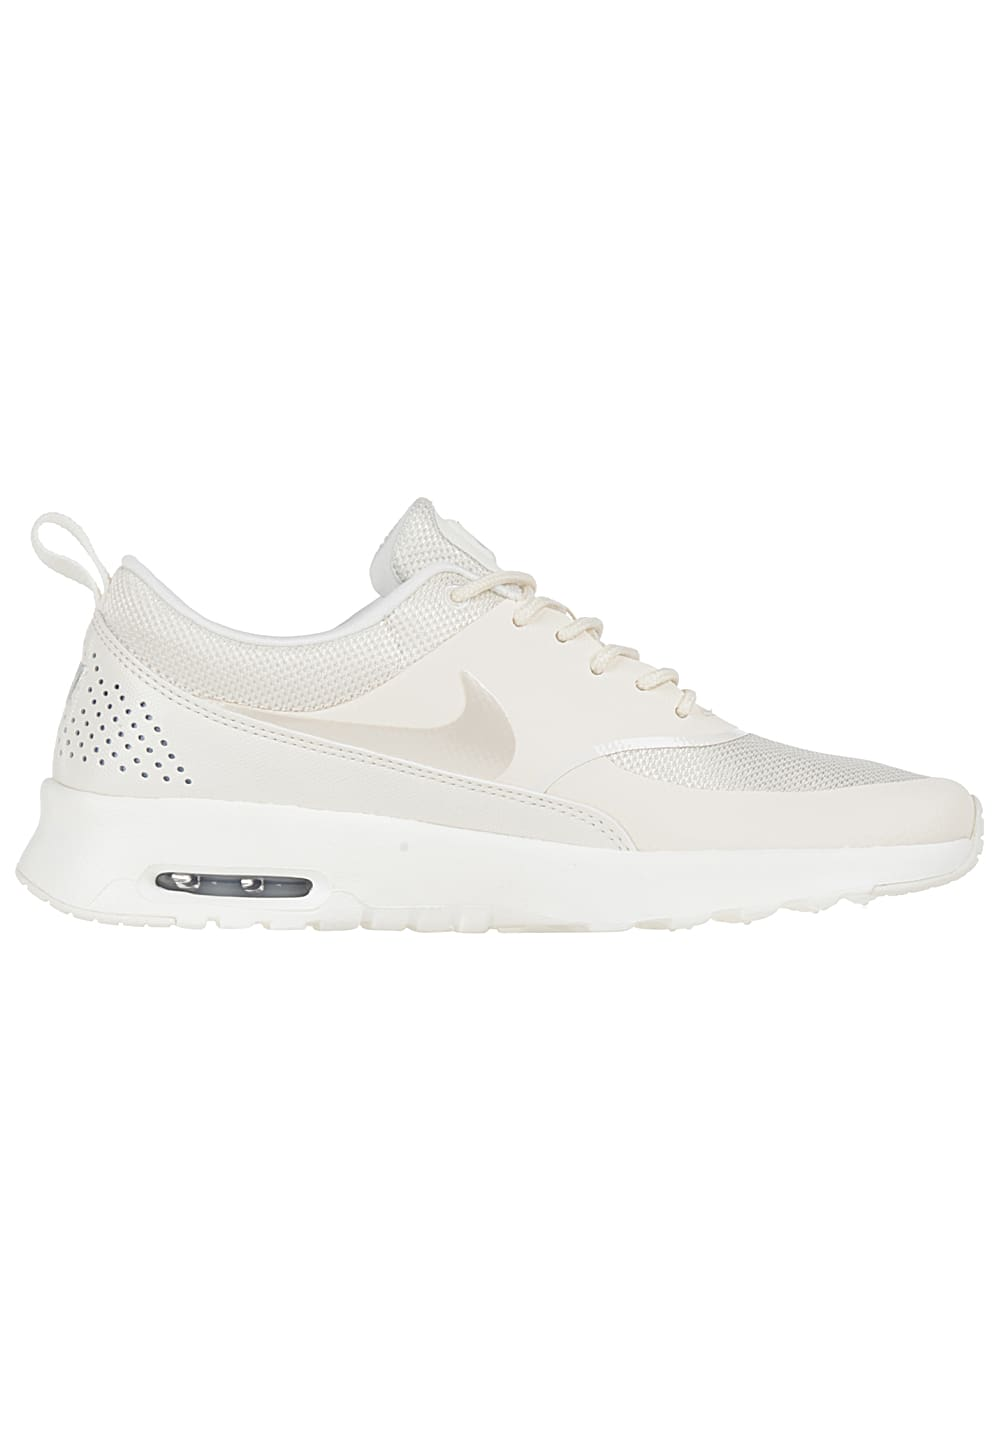 finest selection 0e230 b5818 Next. NIKE SPORTSWEAR. Air Max Thea - Sneakers for Women